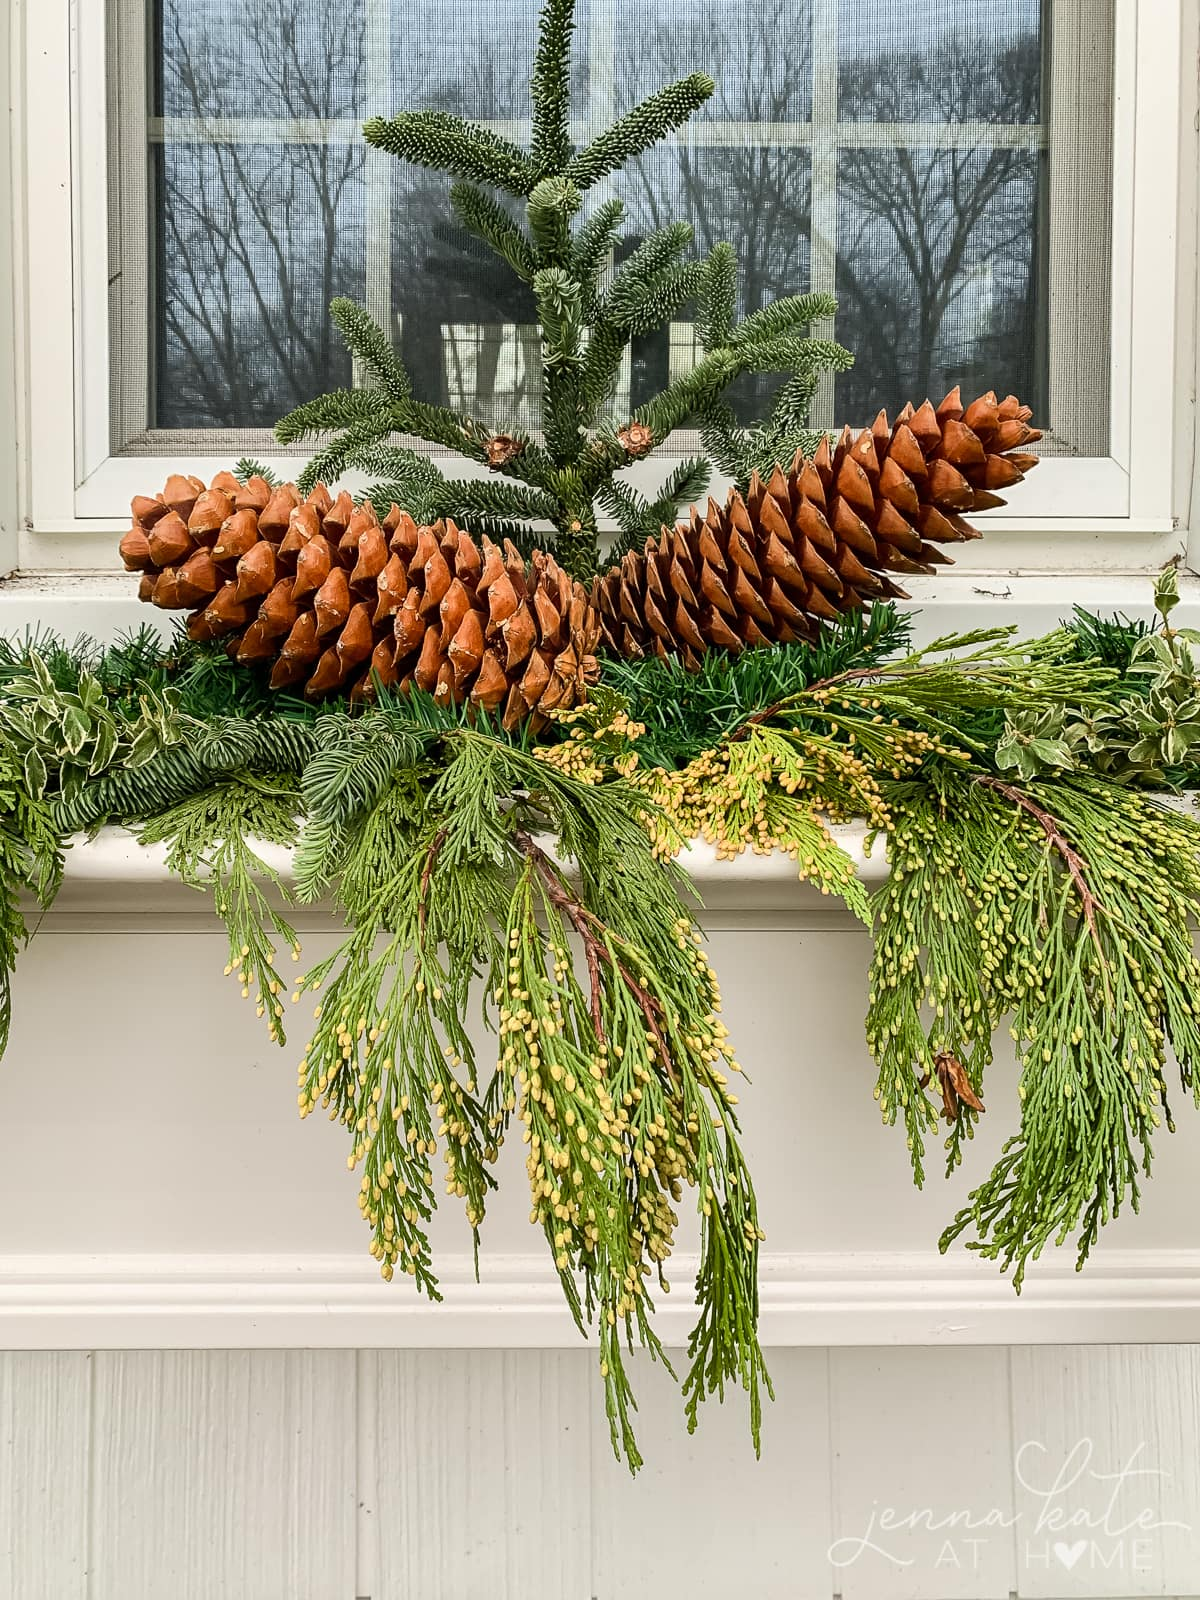 Large pinecones added to the window box arrangement